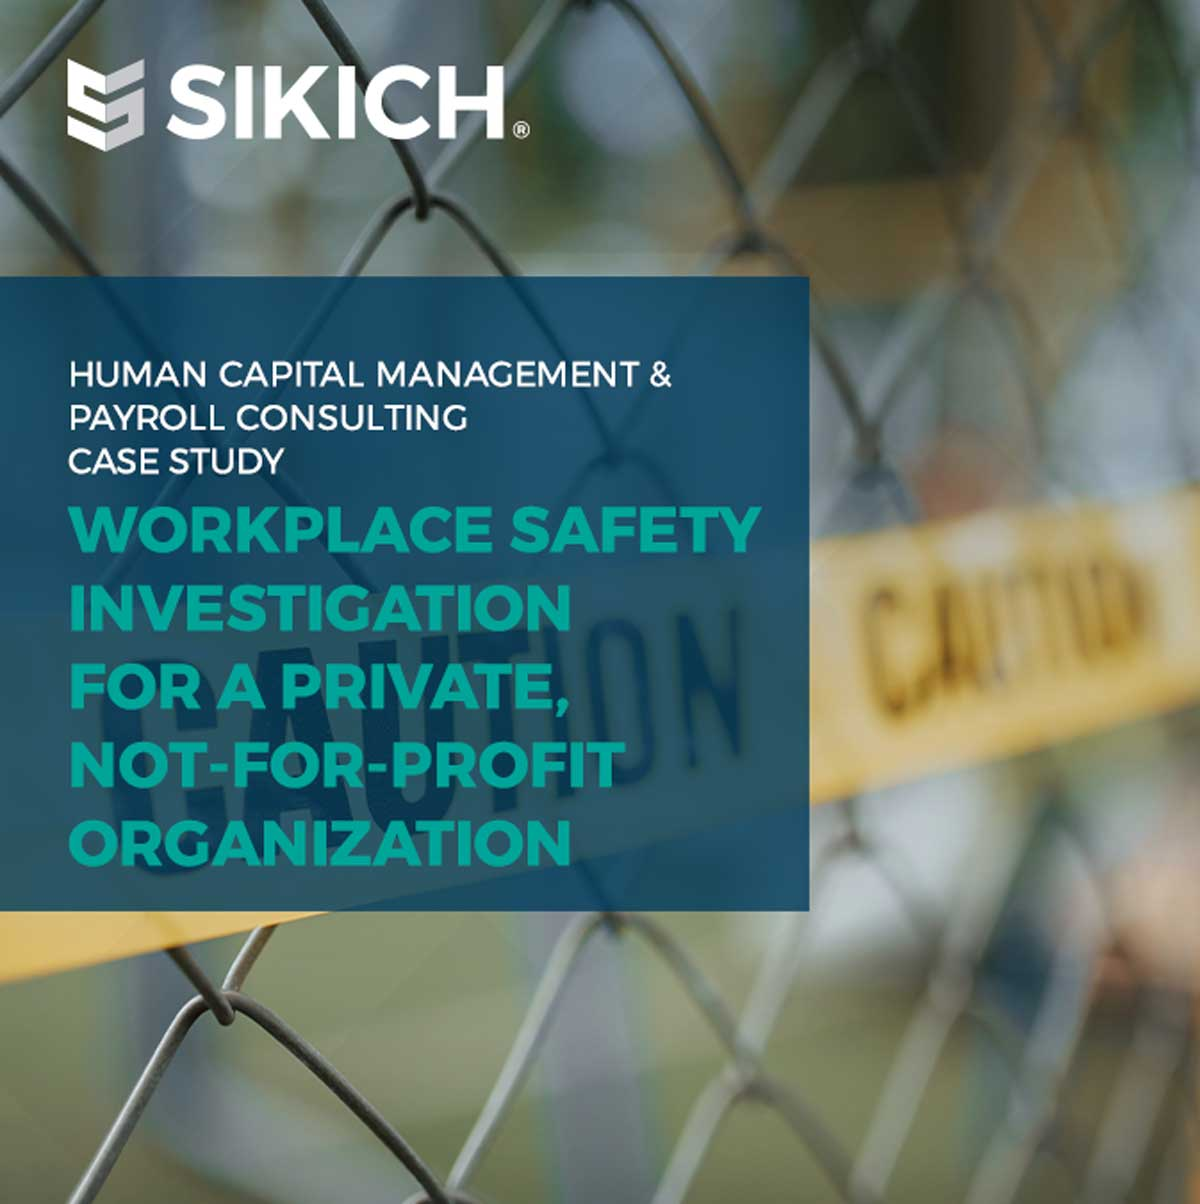 Sikich Workplace Safety Investigation